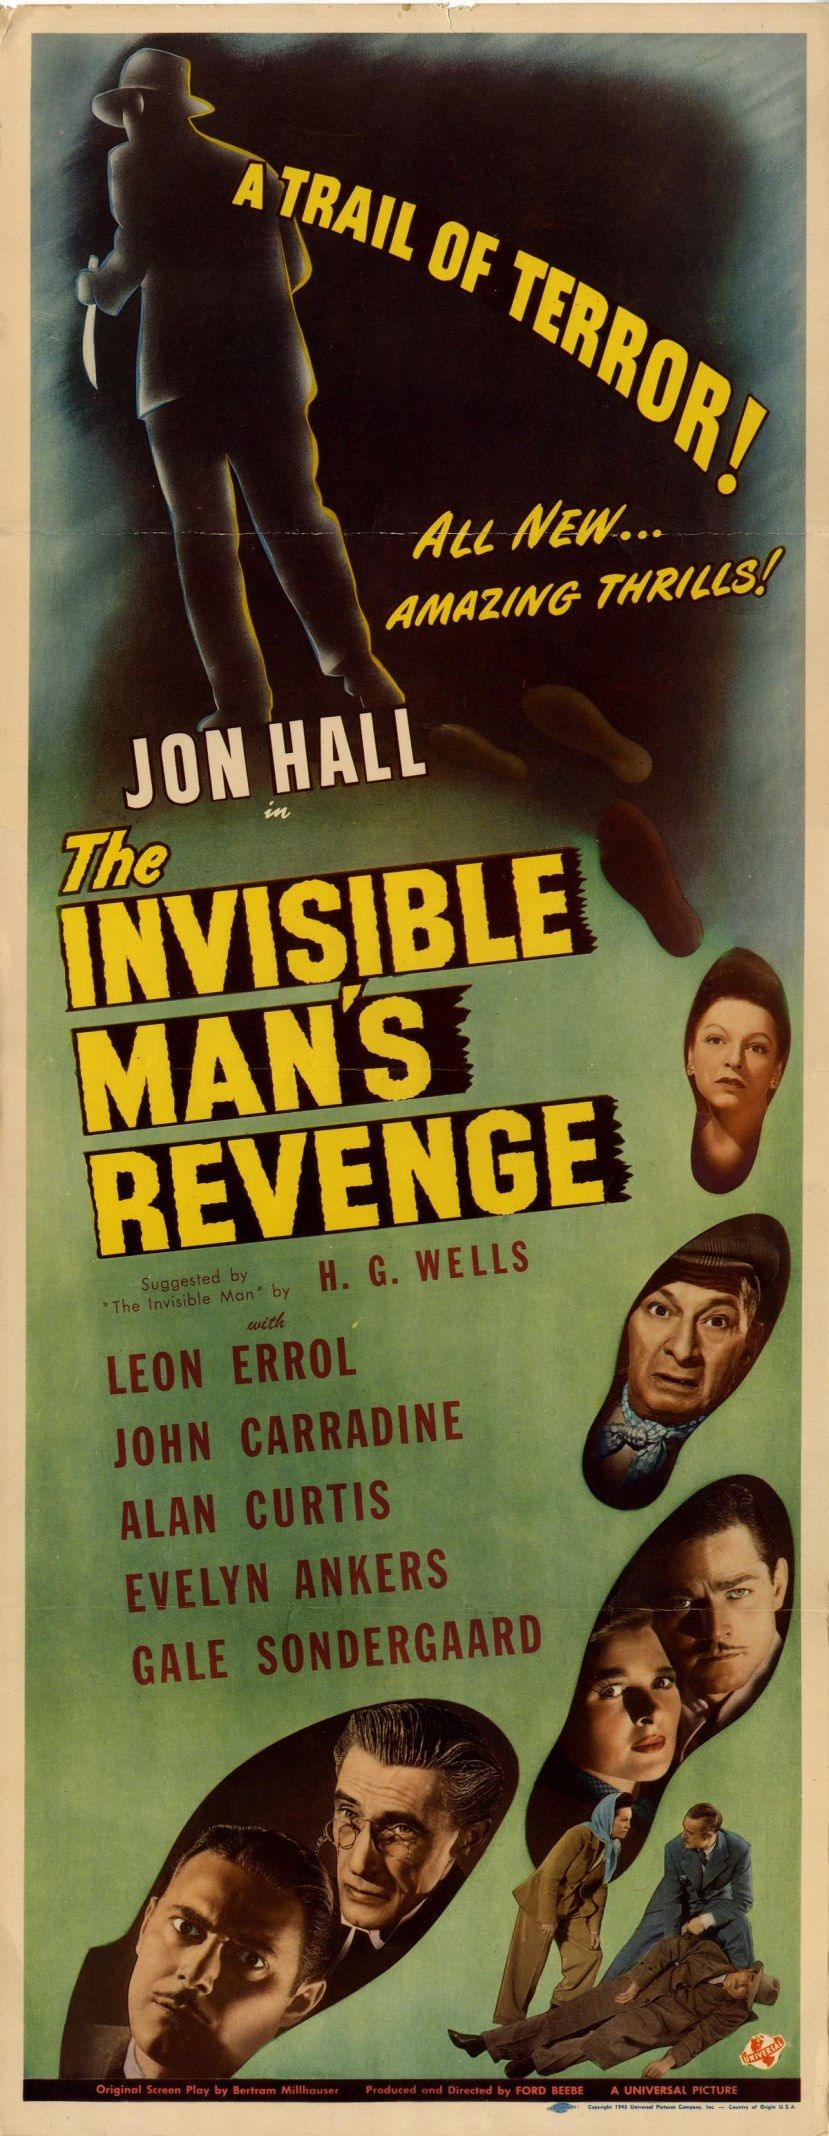 the invisible man's revenged